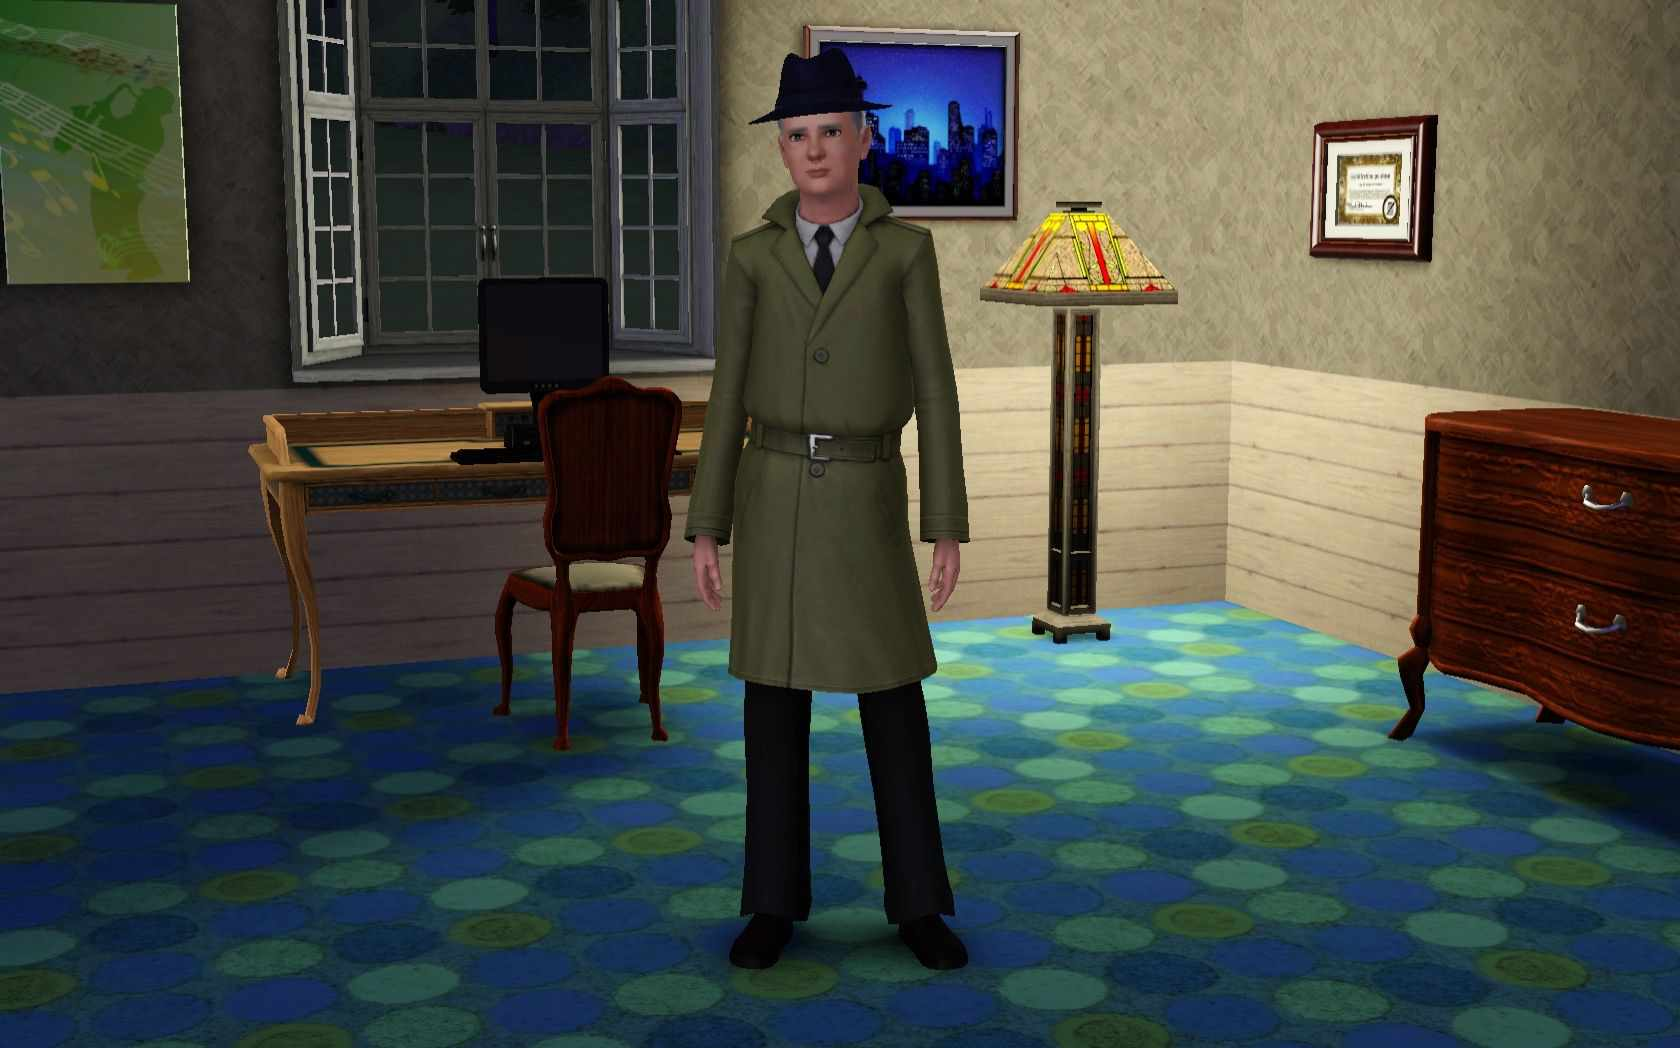 the sims journalist career learn about interviews and traits paper boy uniform the sims 3 lance writer investigative reporter and editor in chief uniforms